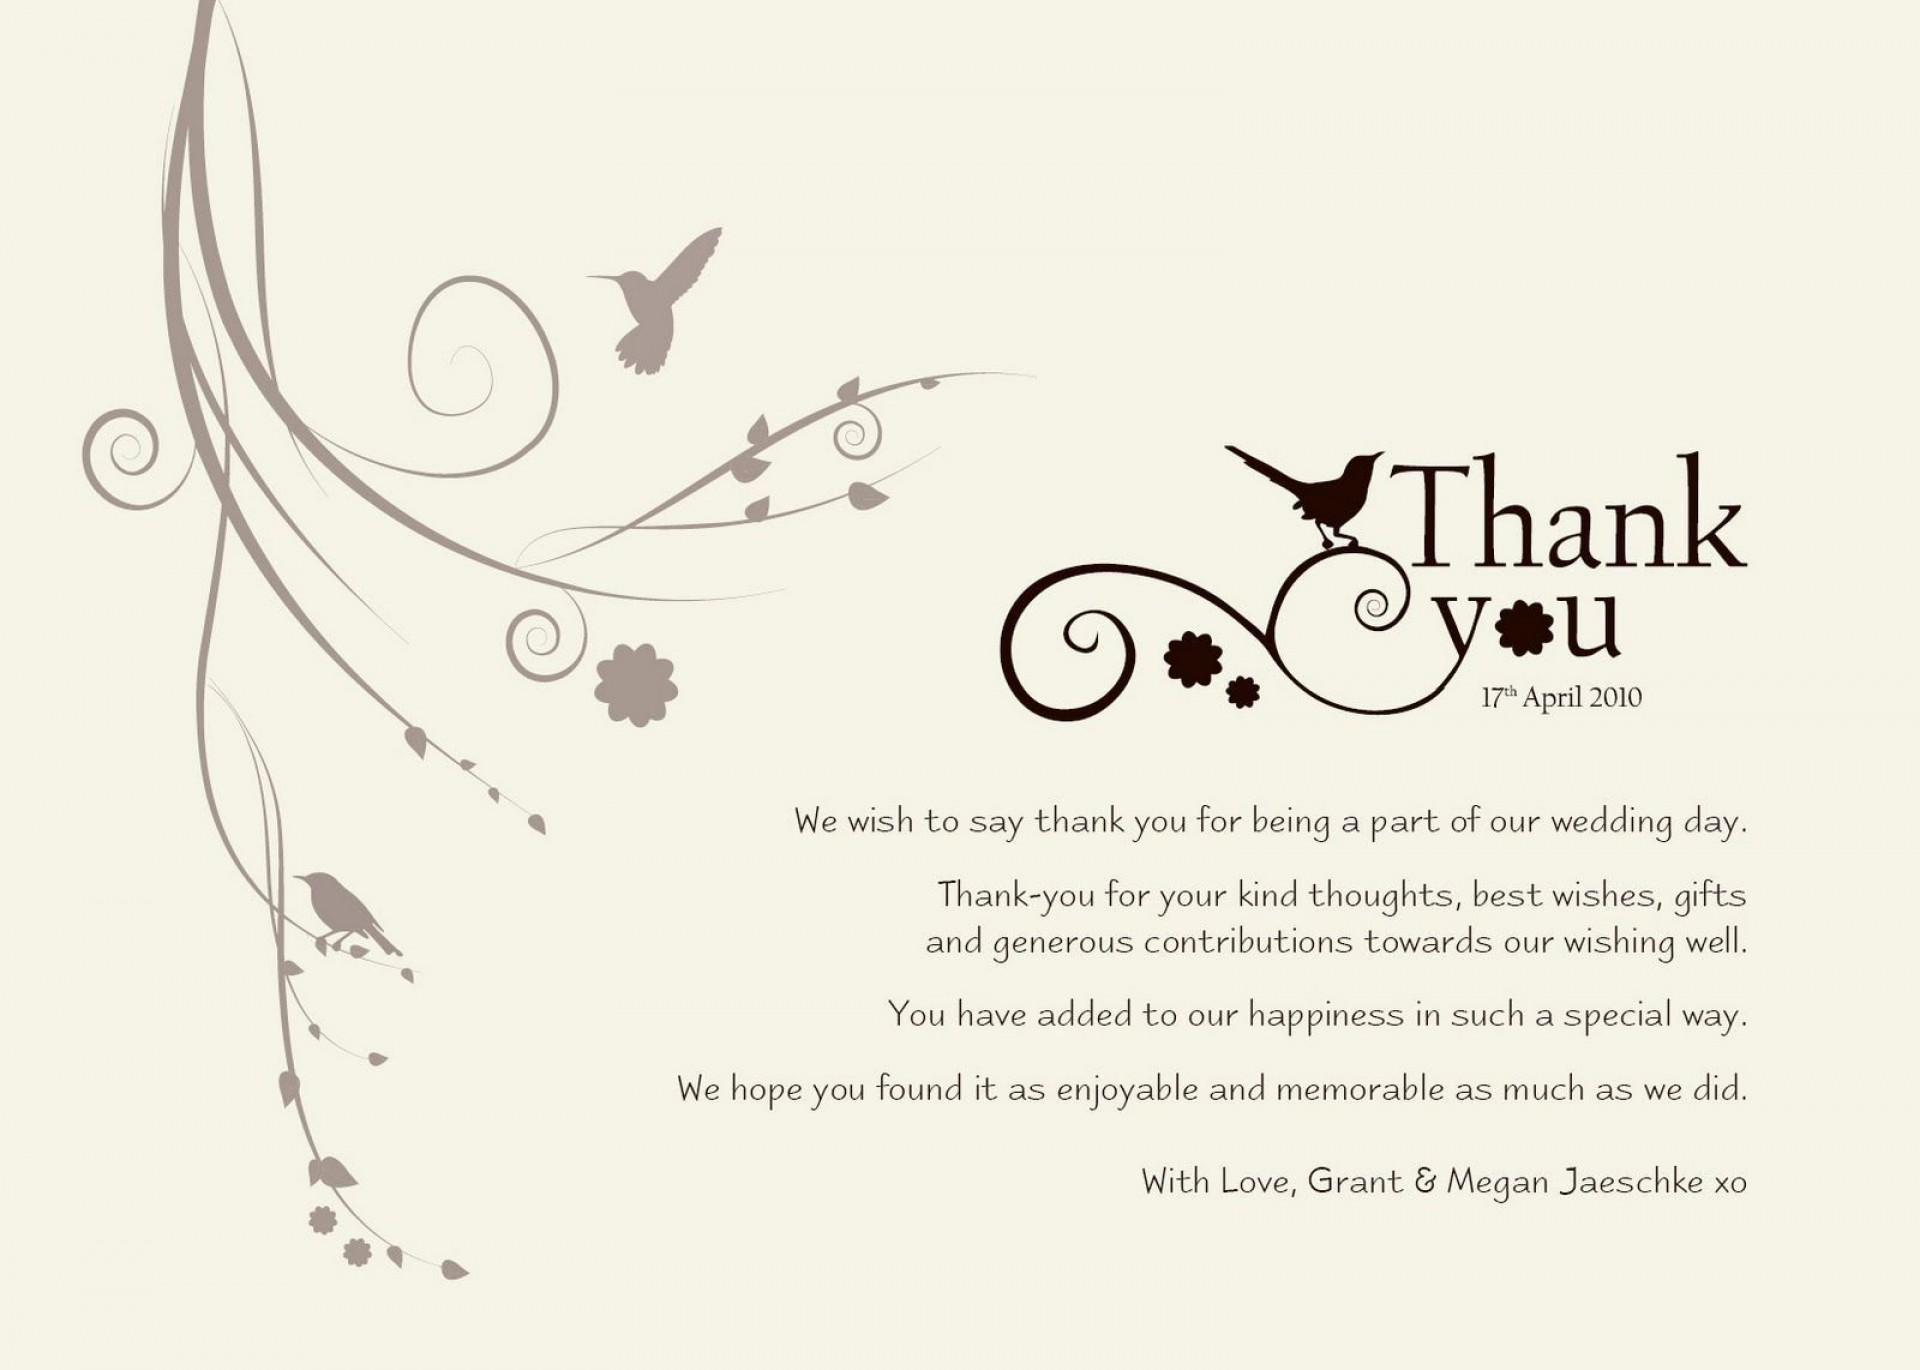 004 Exceptional Wedding Thank You Note Template Sample  Money Wording Bridal Shower Gift1920